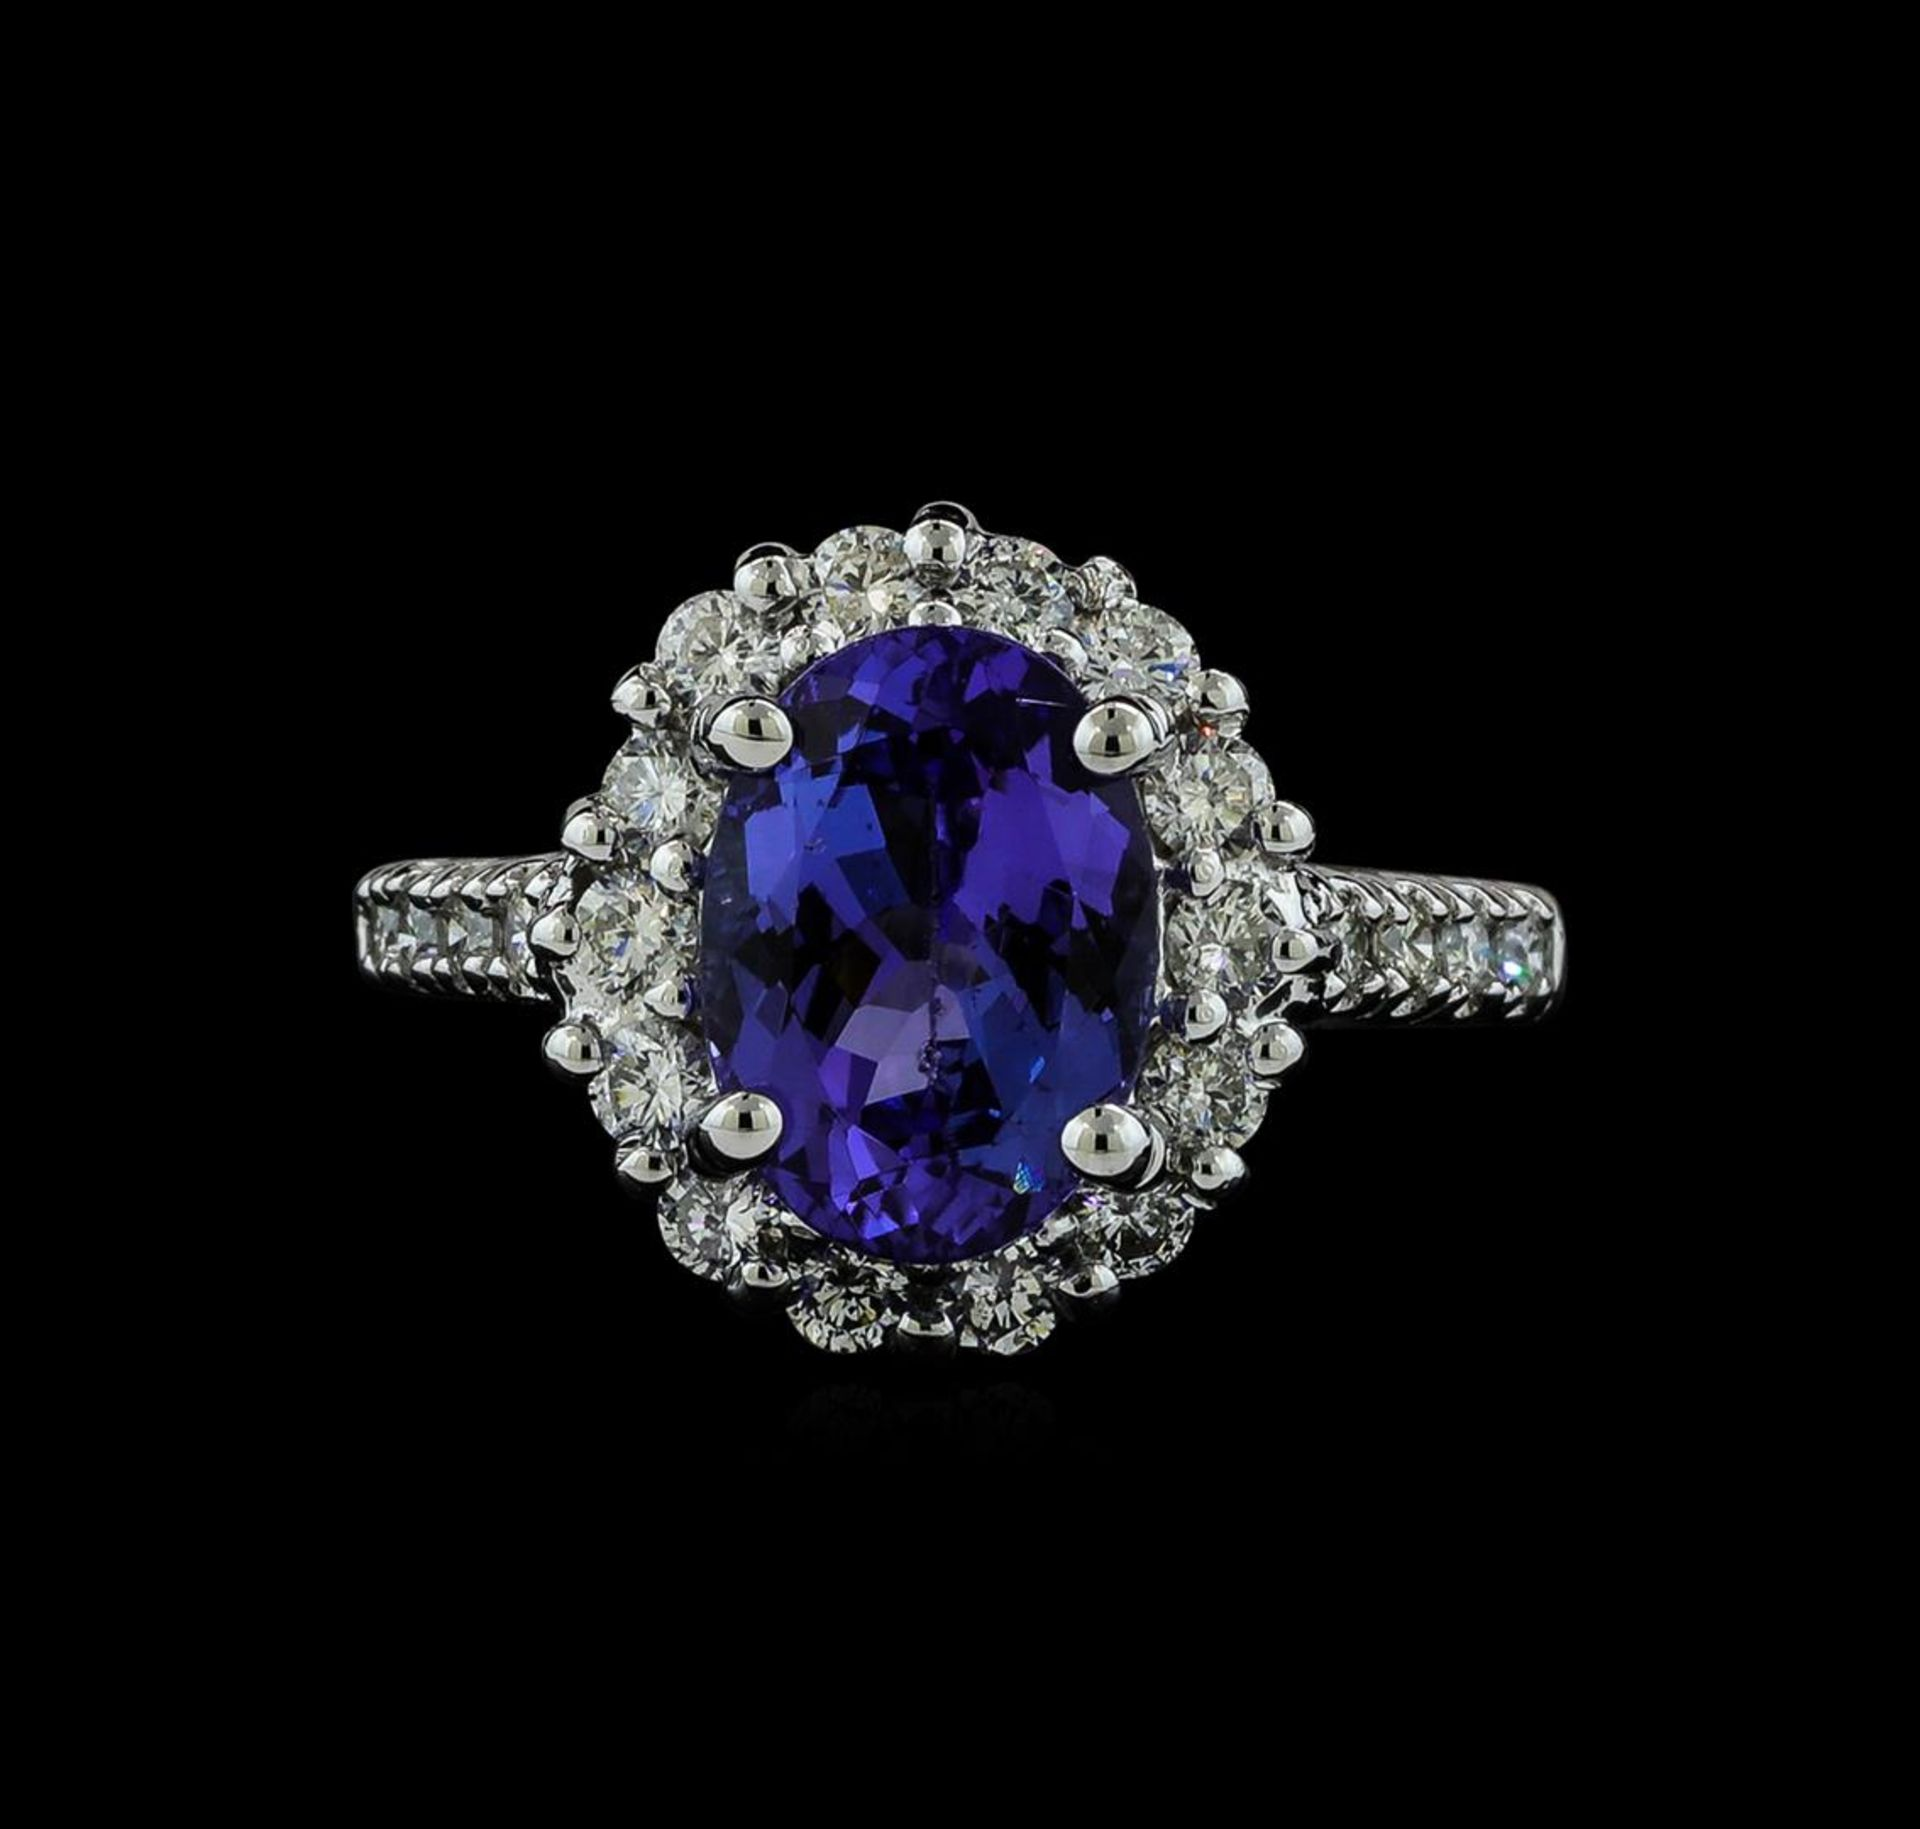 3.06 ctw Tanzanite and Diamond Ring - 14KT White Gold - Image 2 of 5